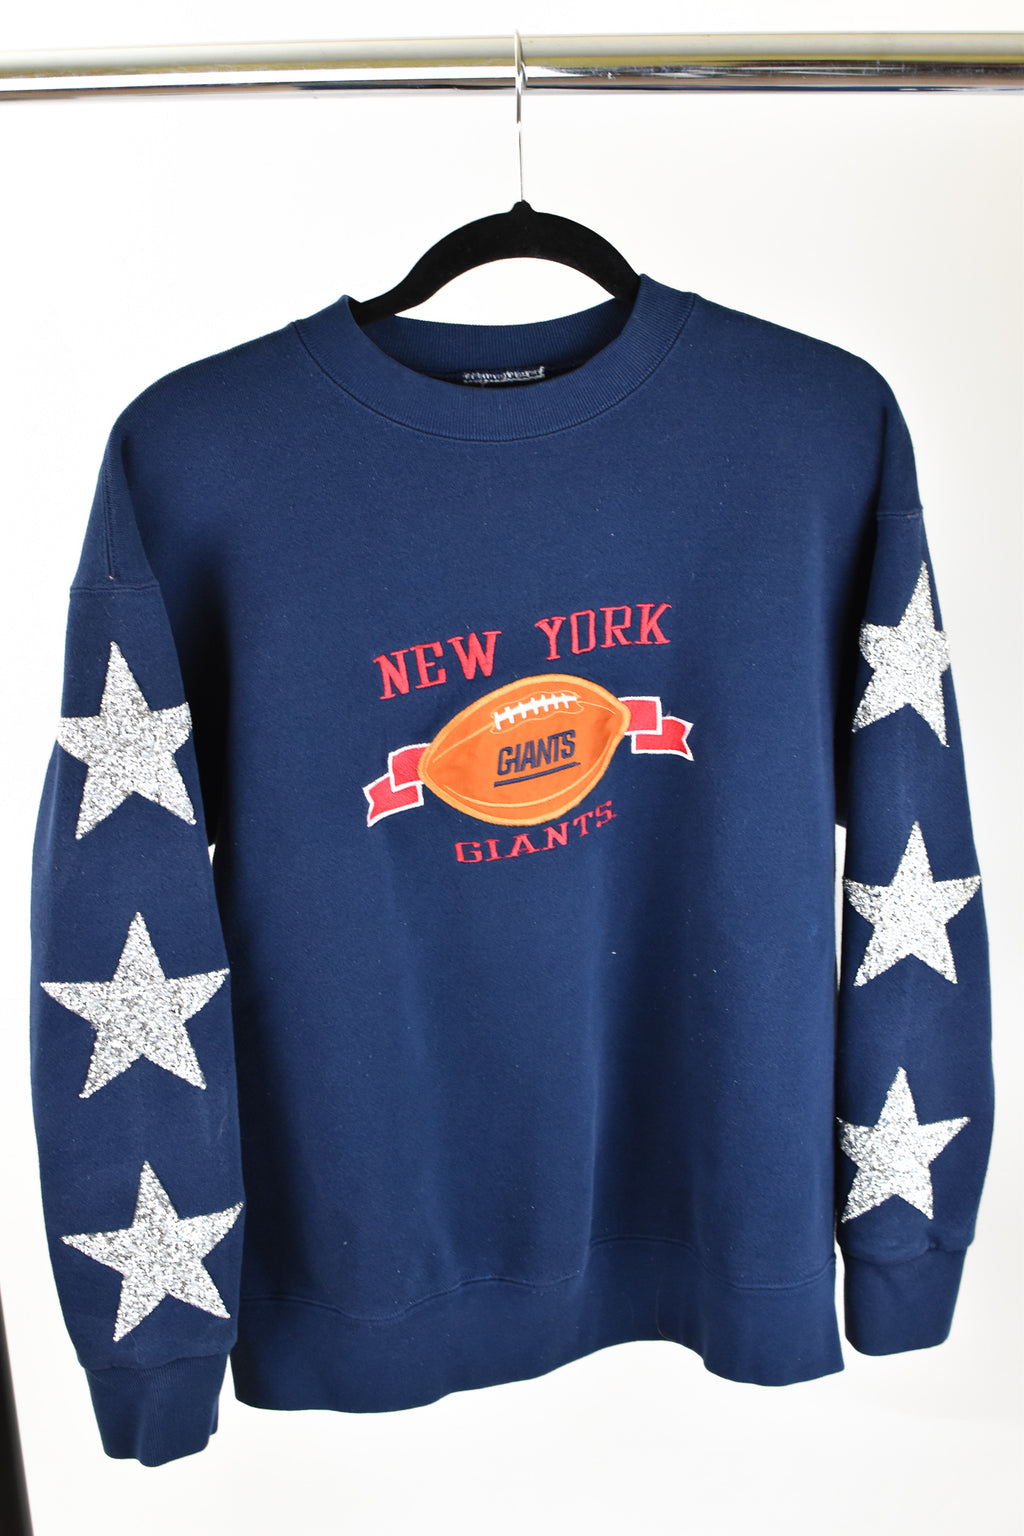 Upcycled VINTAGE New York Giants Star Rhinestone Sweatshirt